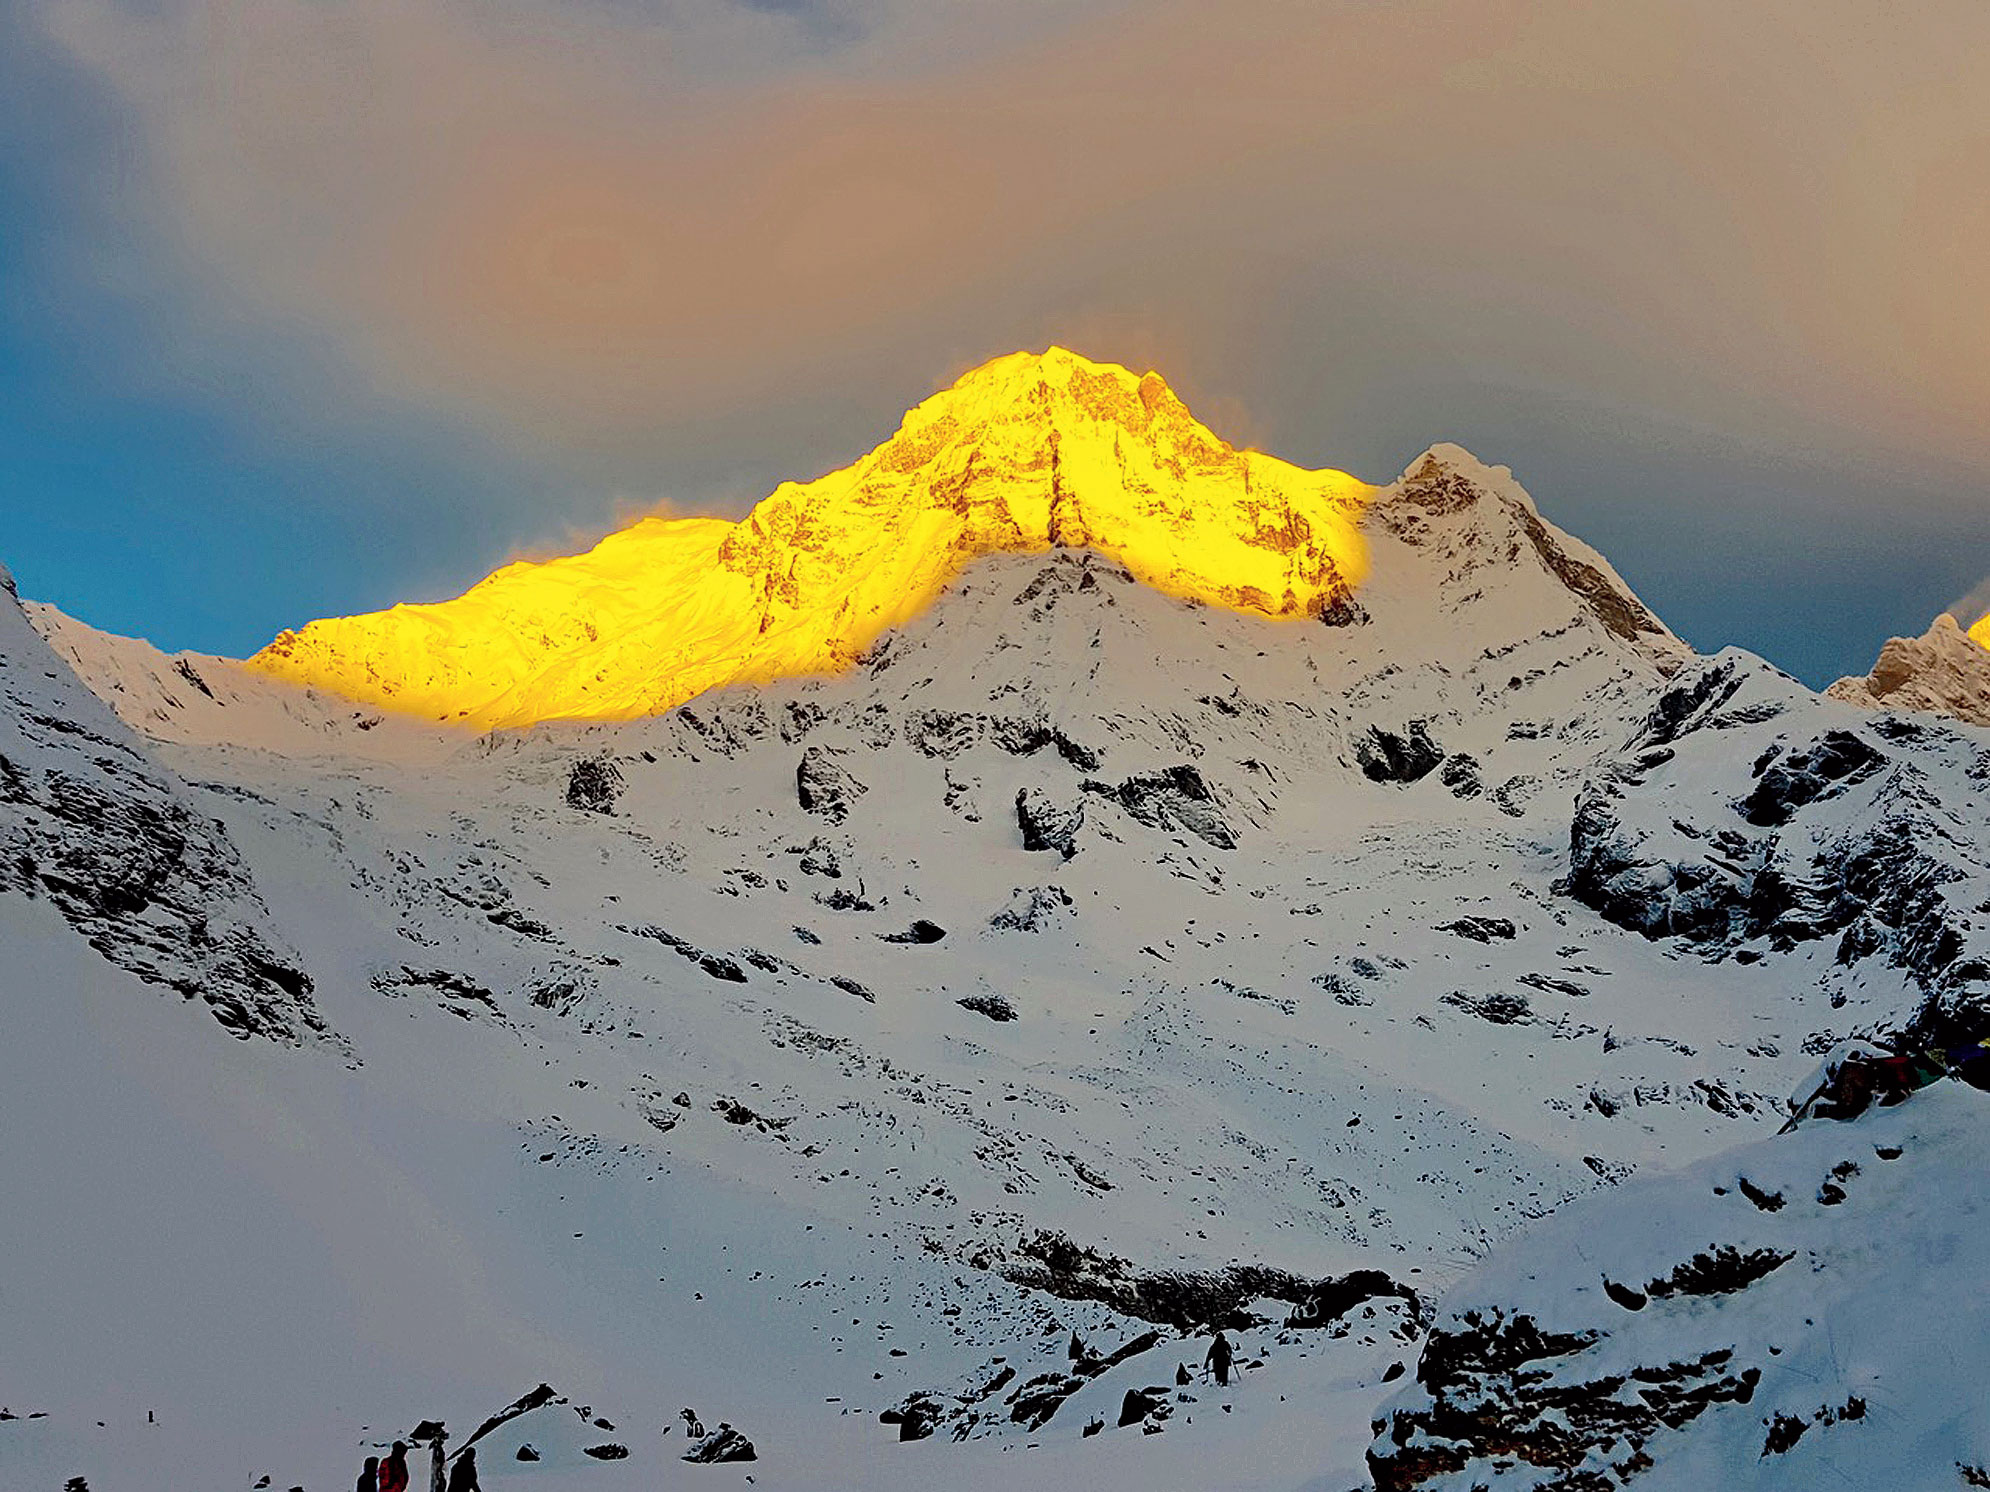 The Annapurna peak glows in the first light of the morning